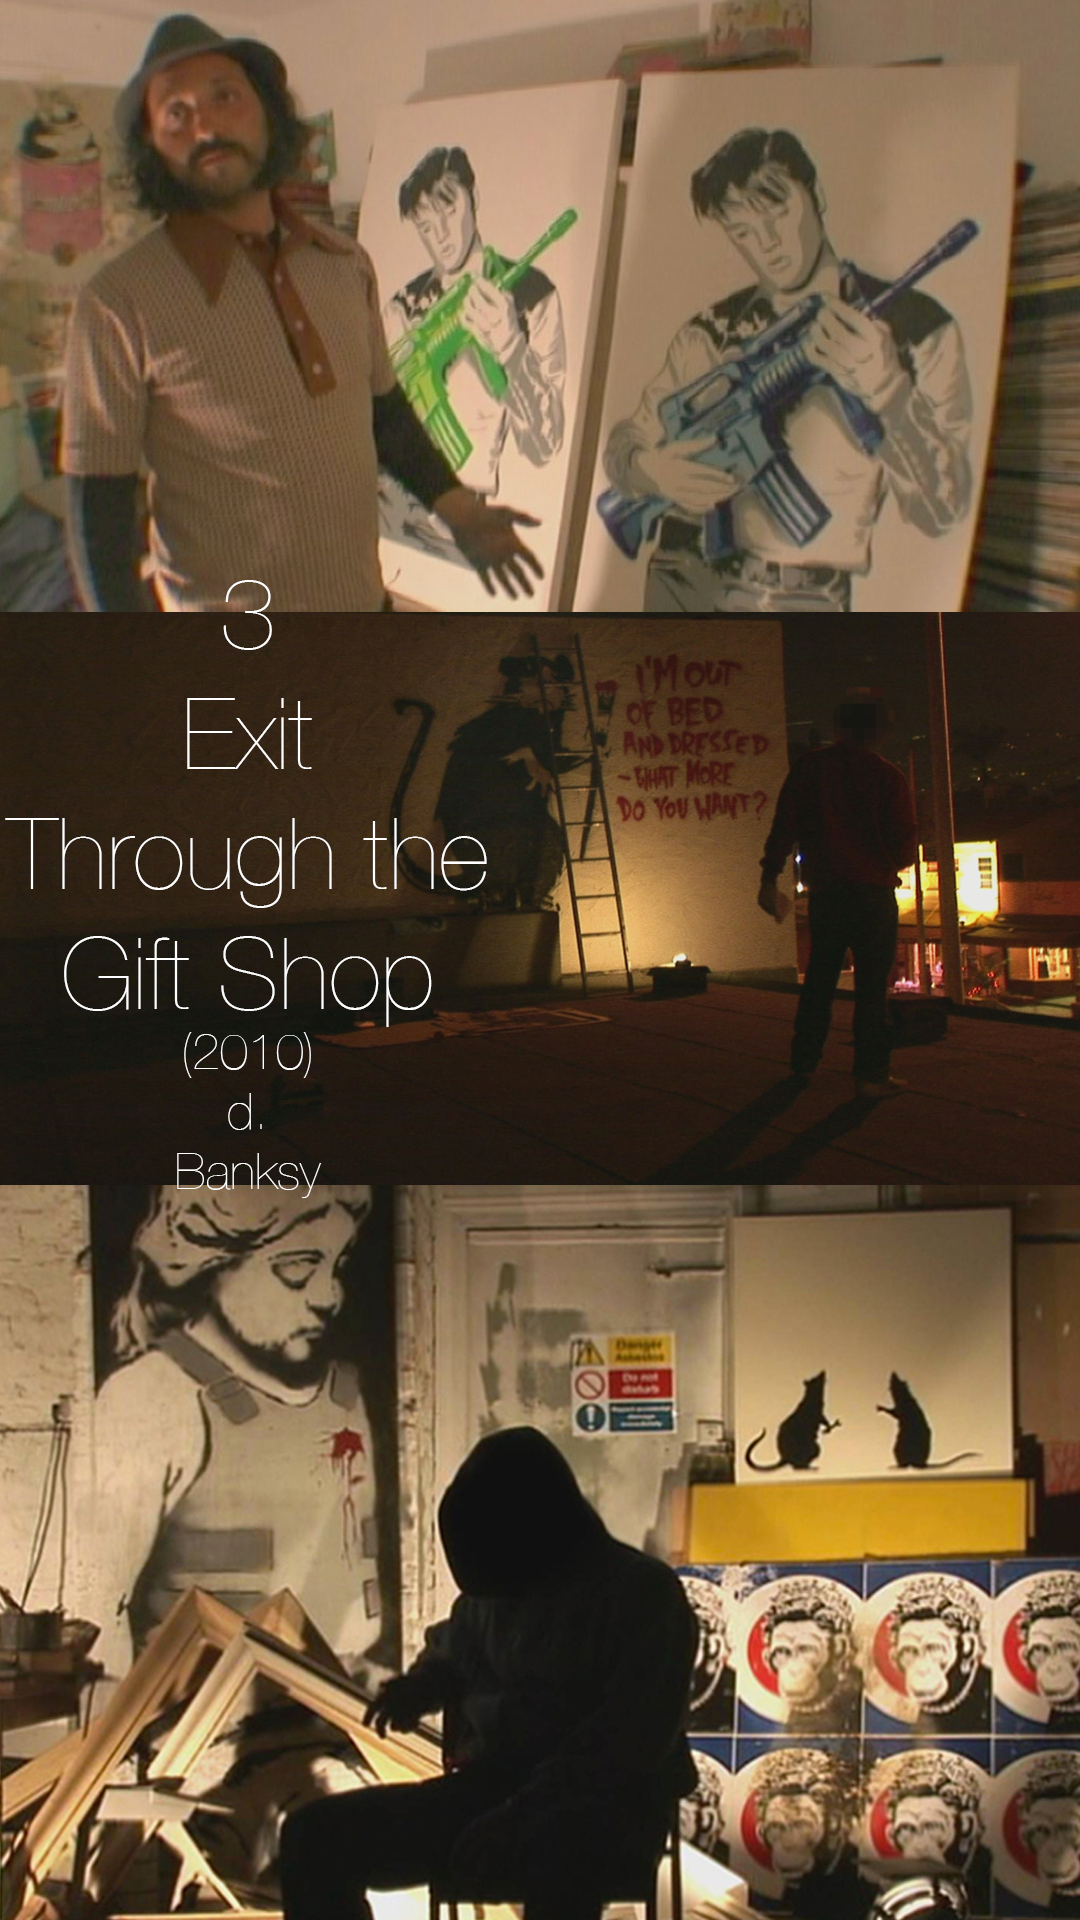 EXIT THROUGH THE GIFT SHOP has been the subject of many years worth of debate over whether it actually is a documentary or if it's just another work of street art by Banksy. This film starts in the hands of a man who wants to find out about who Banksy is, and ends up having the camera turned on himself as he decides to become a street artist. Whether or not these events actually happened or whether it was all staged, it's a great documentary.